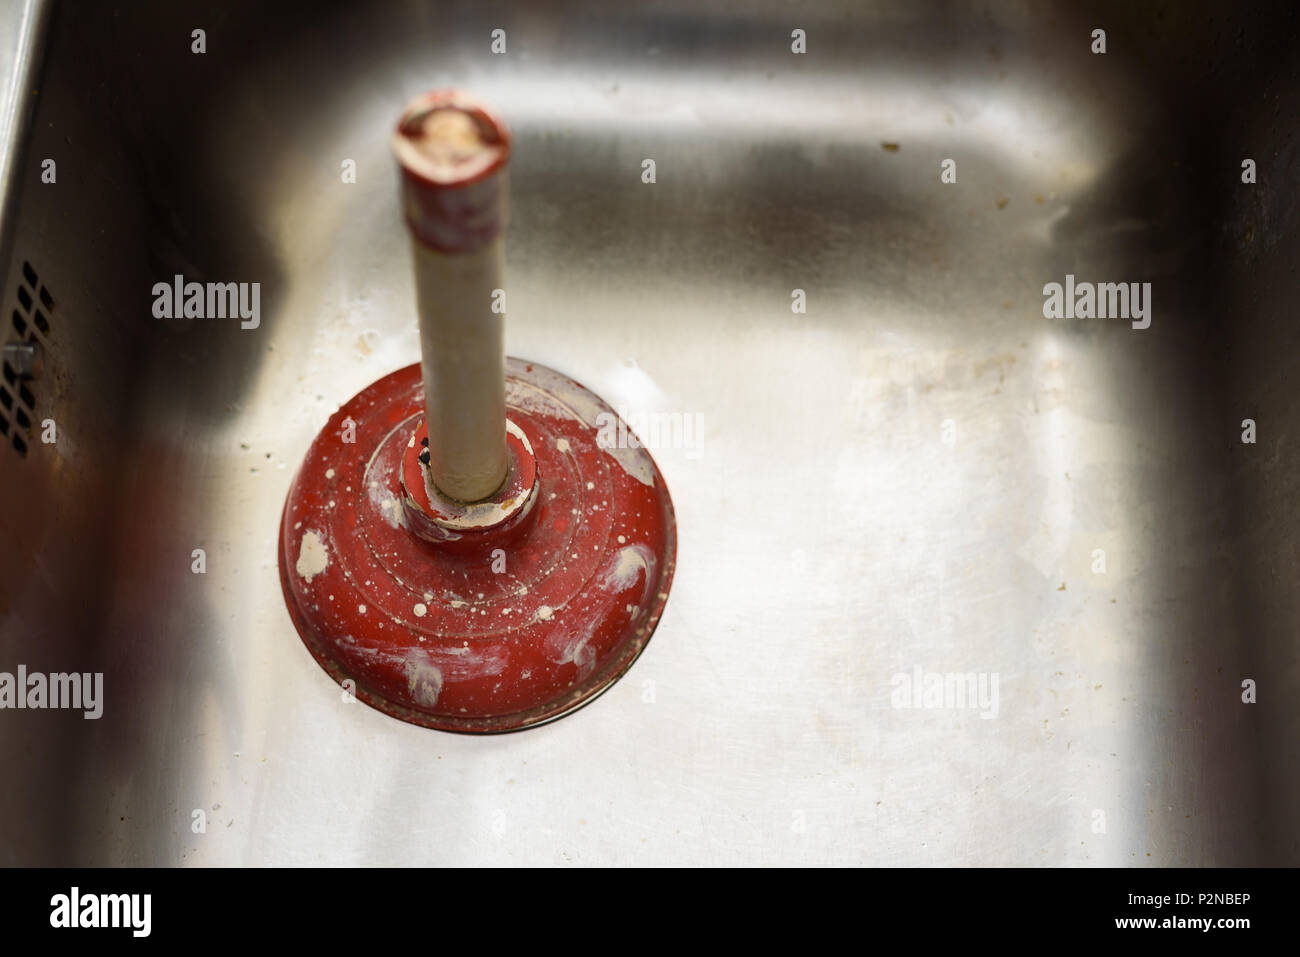 A plunger used to clean a clogged / blocked kitchen sink ...